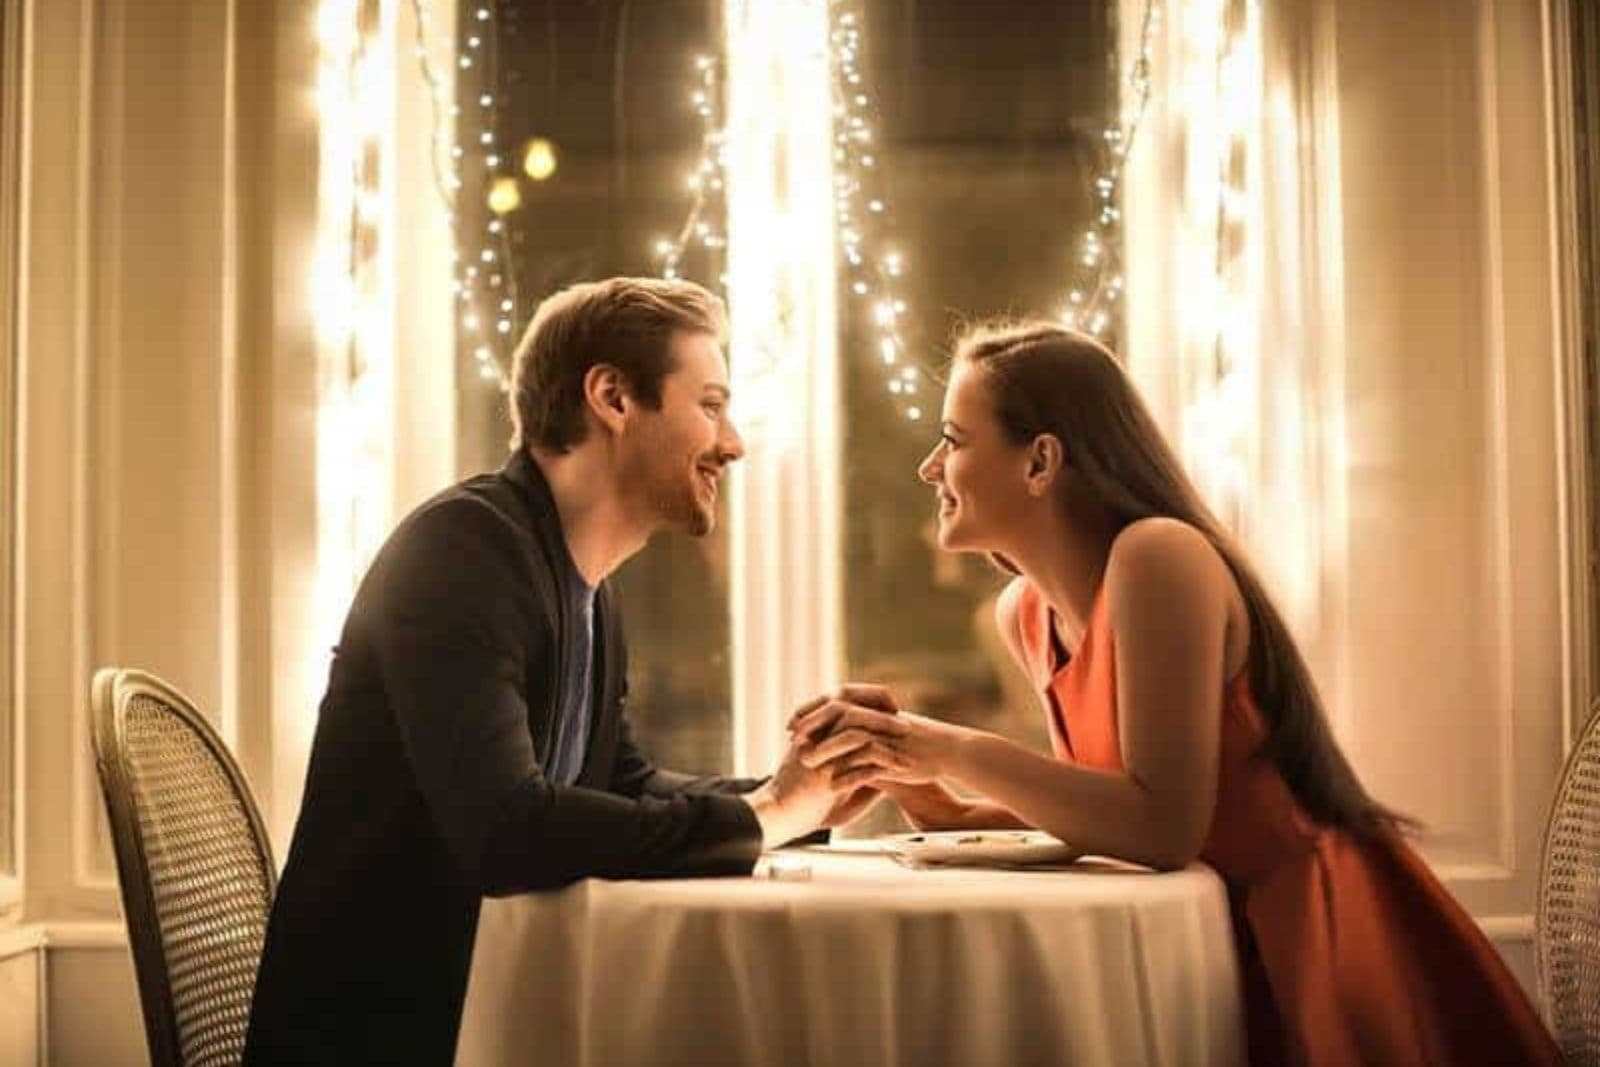 couple having dinner at restaurant